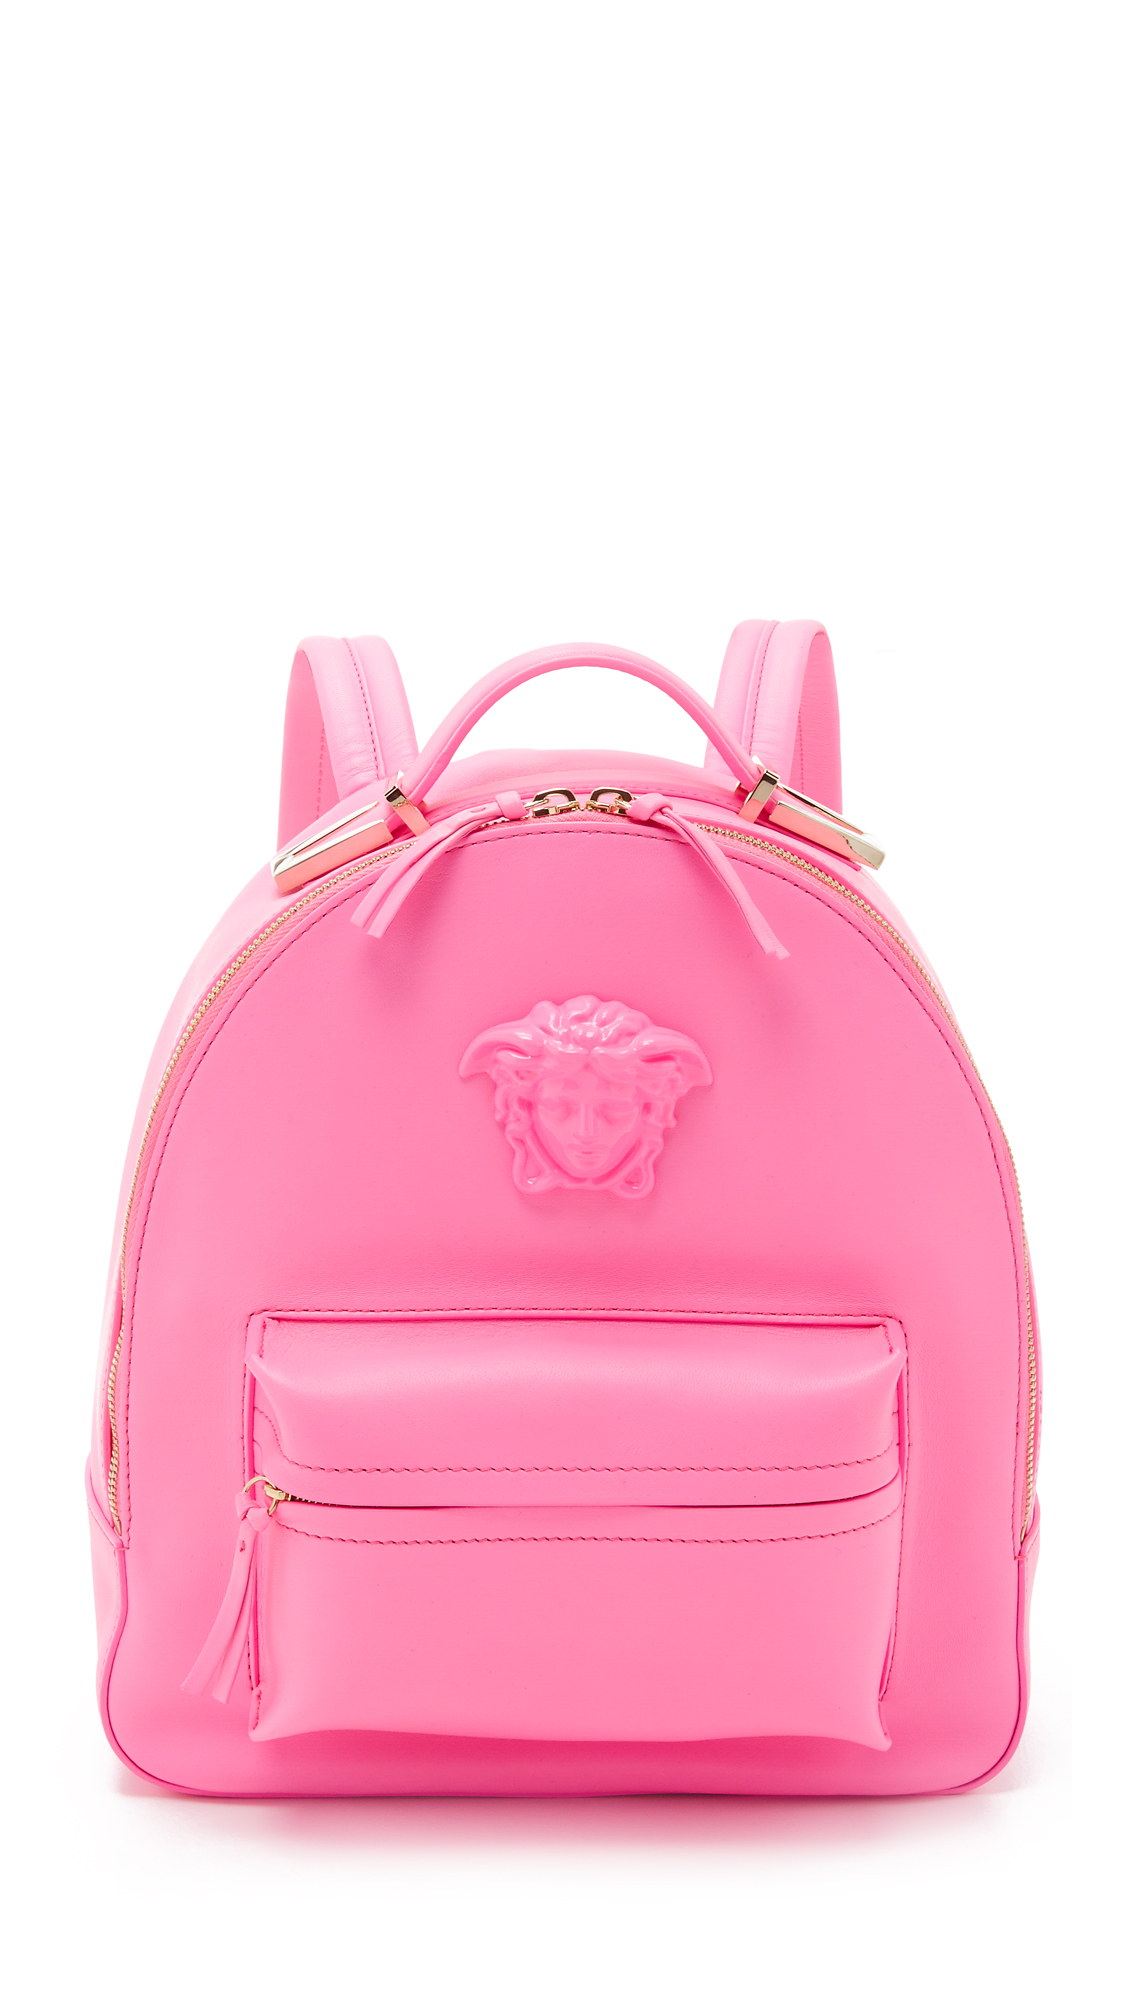 397531a111 Versace Medusa Palazzo Leather Backpack In Pink